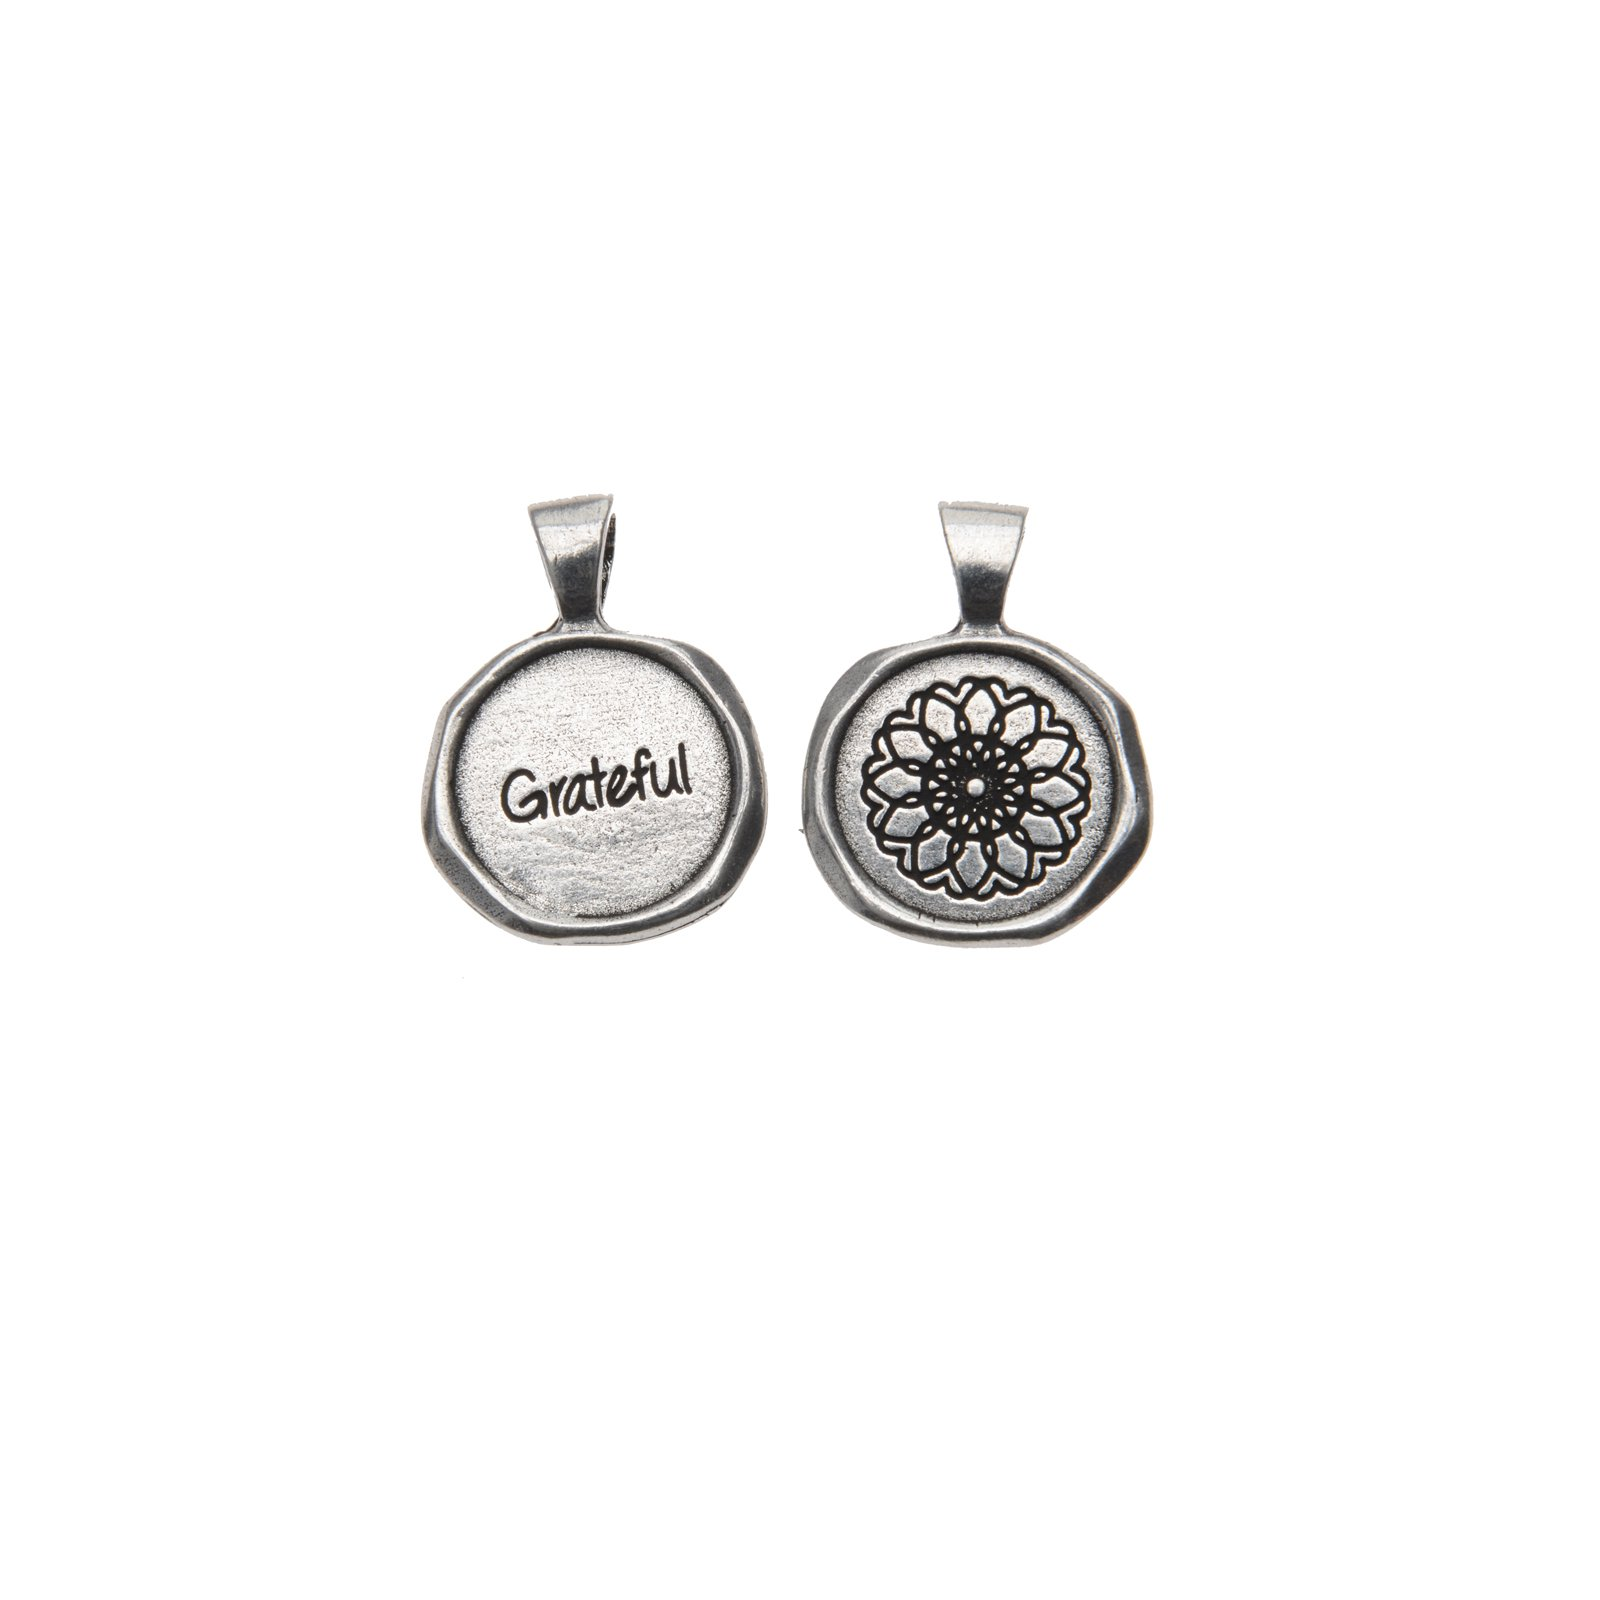 Grateful Wax Seal Charm with Necklace